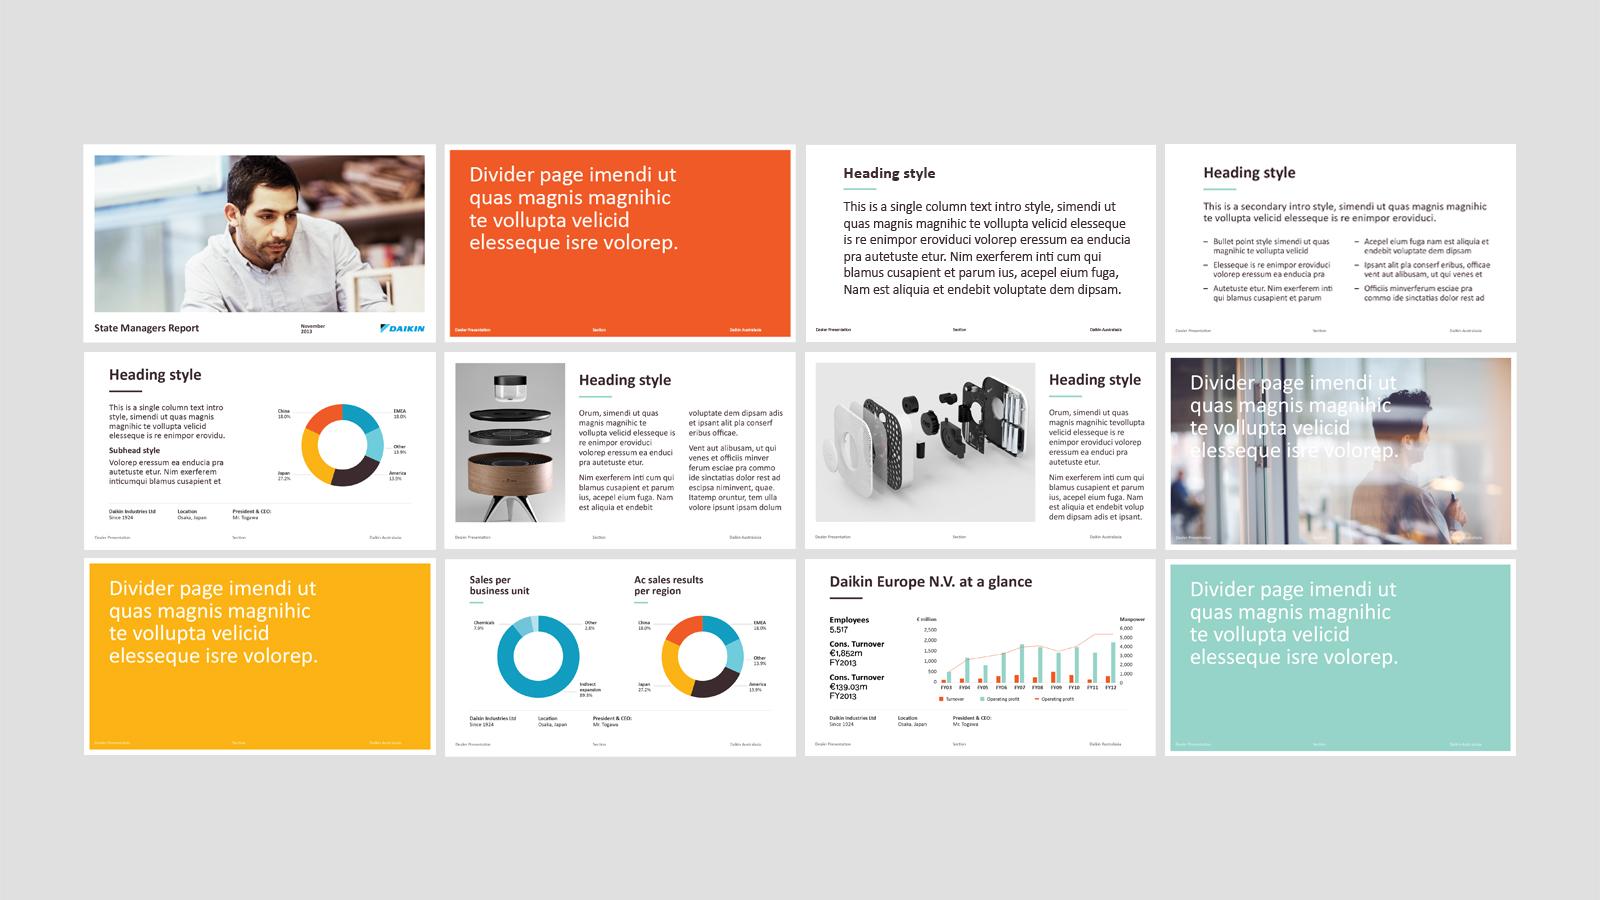 Daikin Powerpoint Templates – features fresh colour palette, new brand imagery and typography